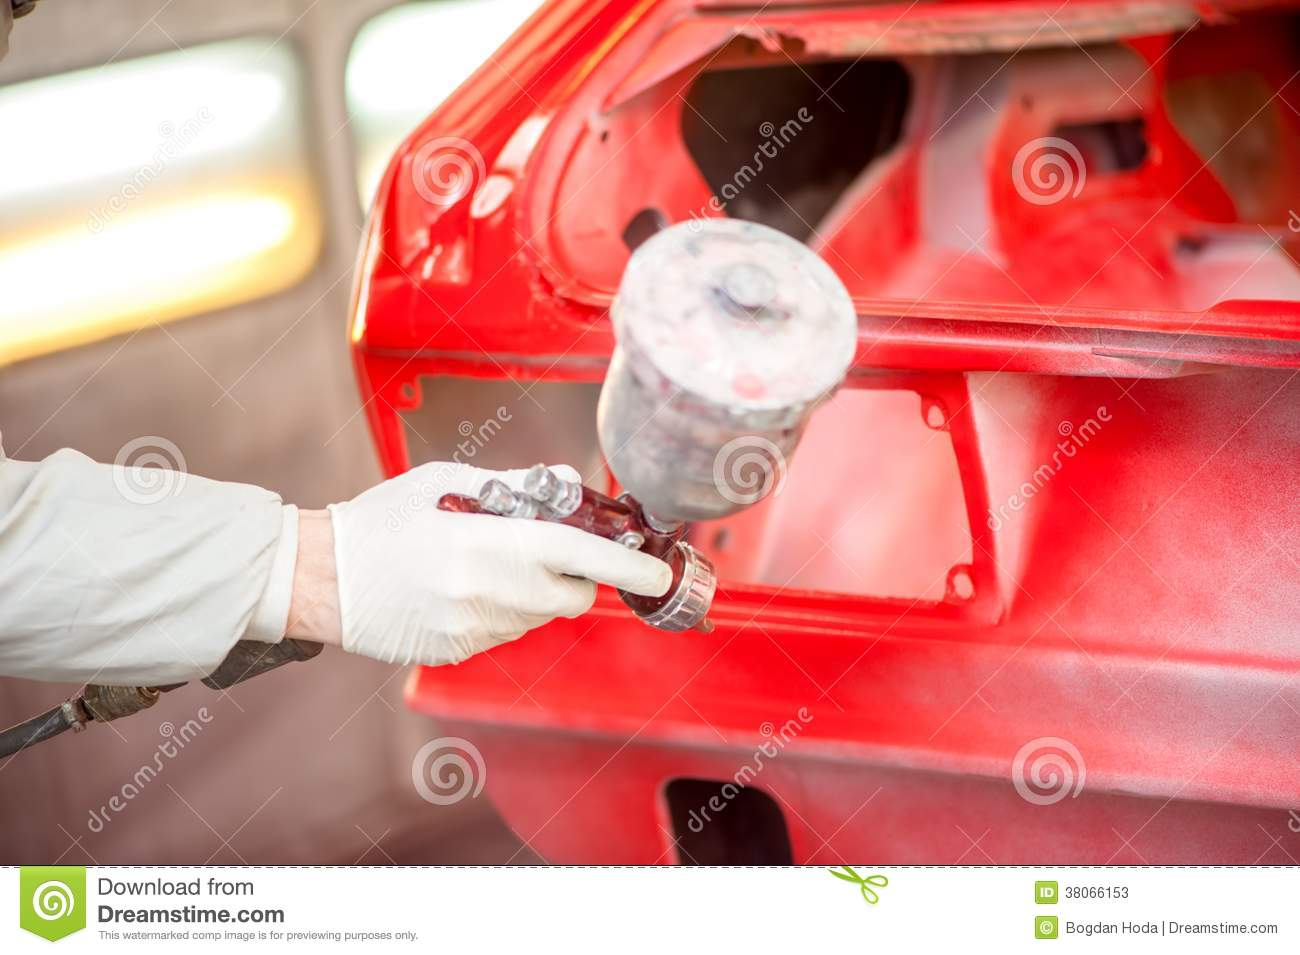 close up of spray paint gun painting a red car stock photos image 38066153. Black Bedroom Furniture Sets. Home Design Ideas